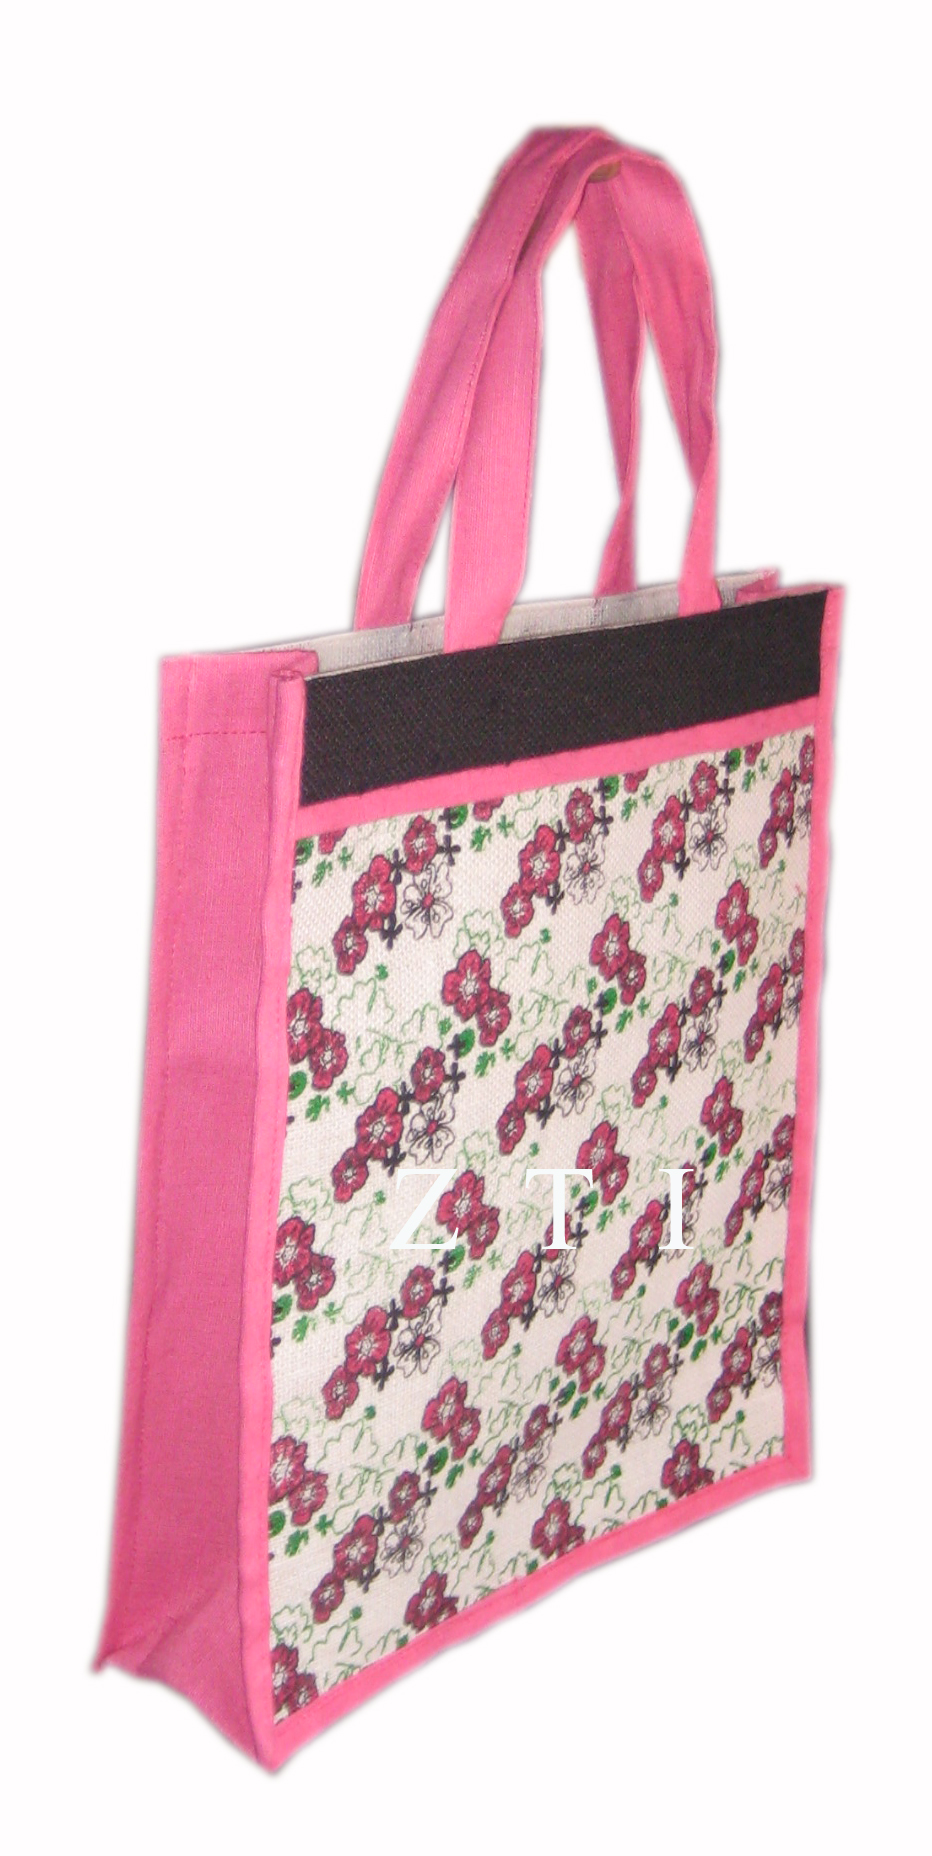 MODEL-NO.-JPR-1284-SIZE-30x36x10cms.-PRICE-US-1.11